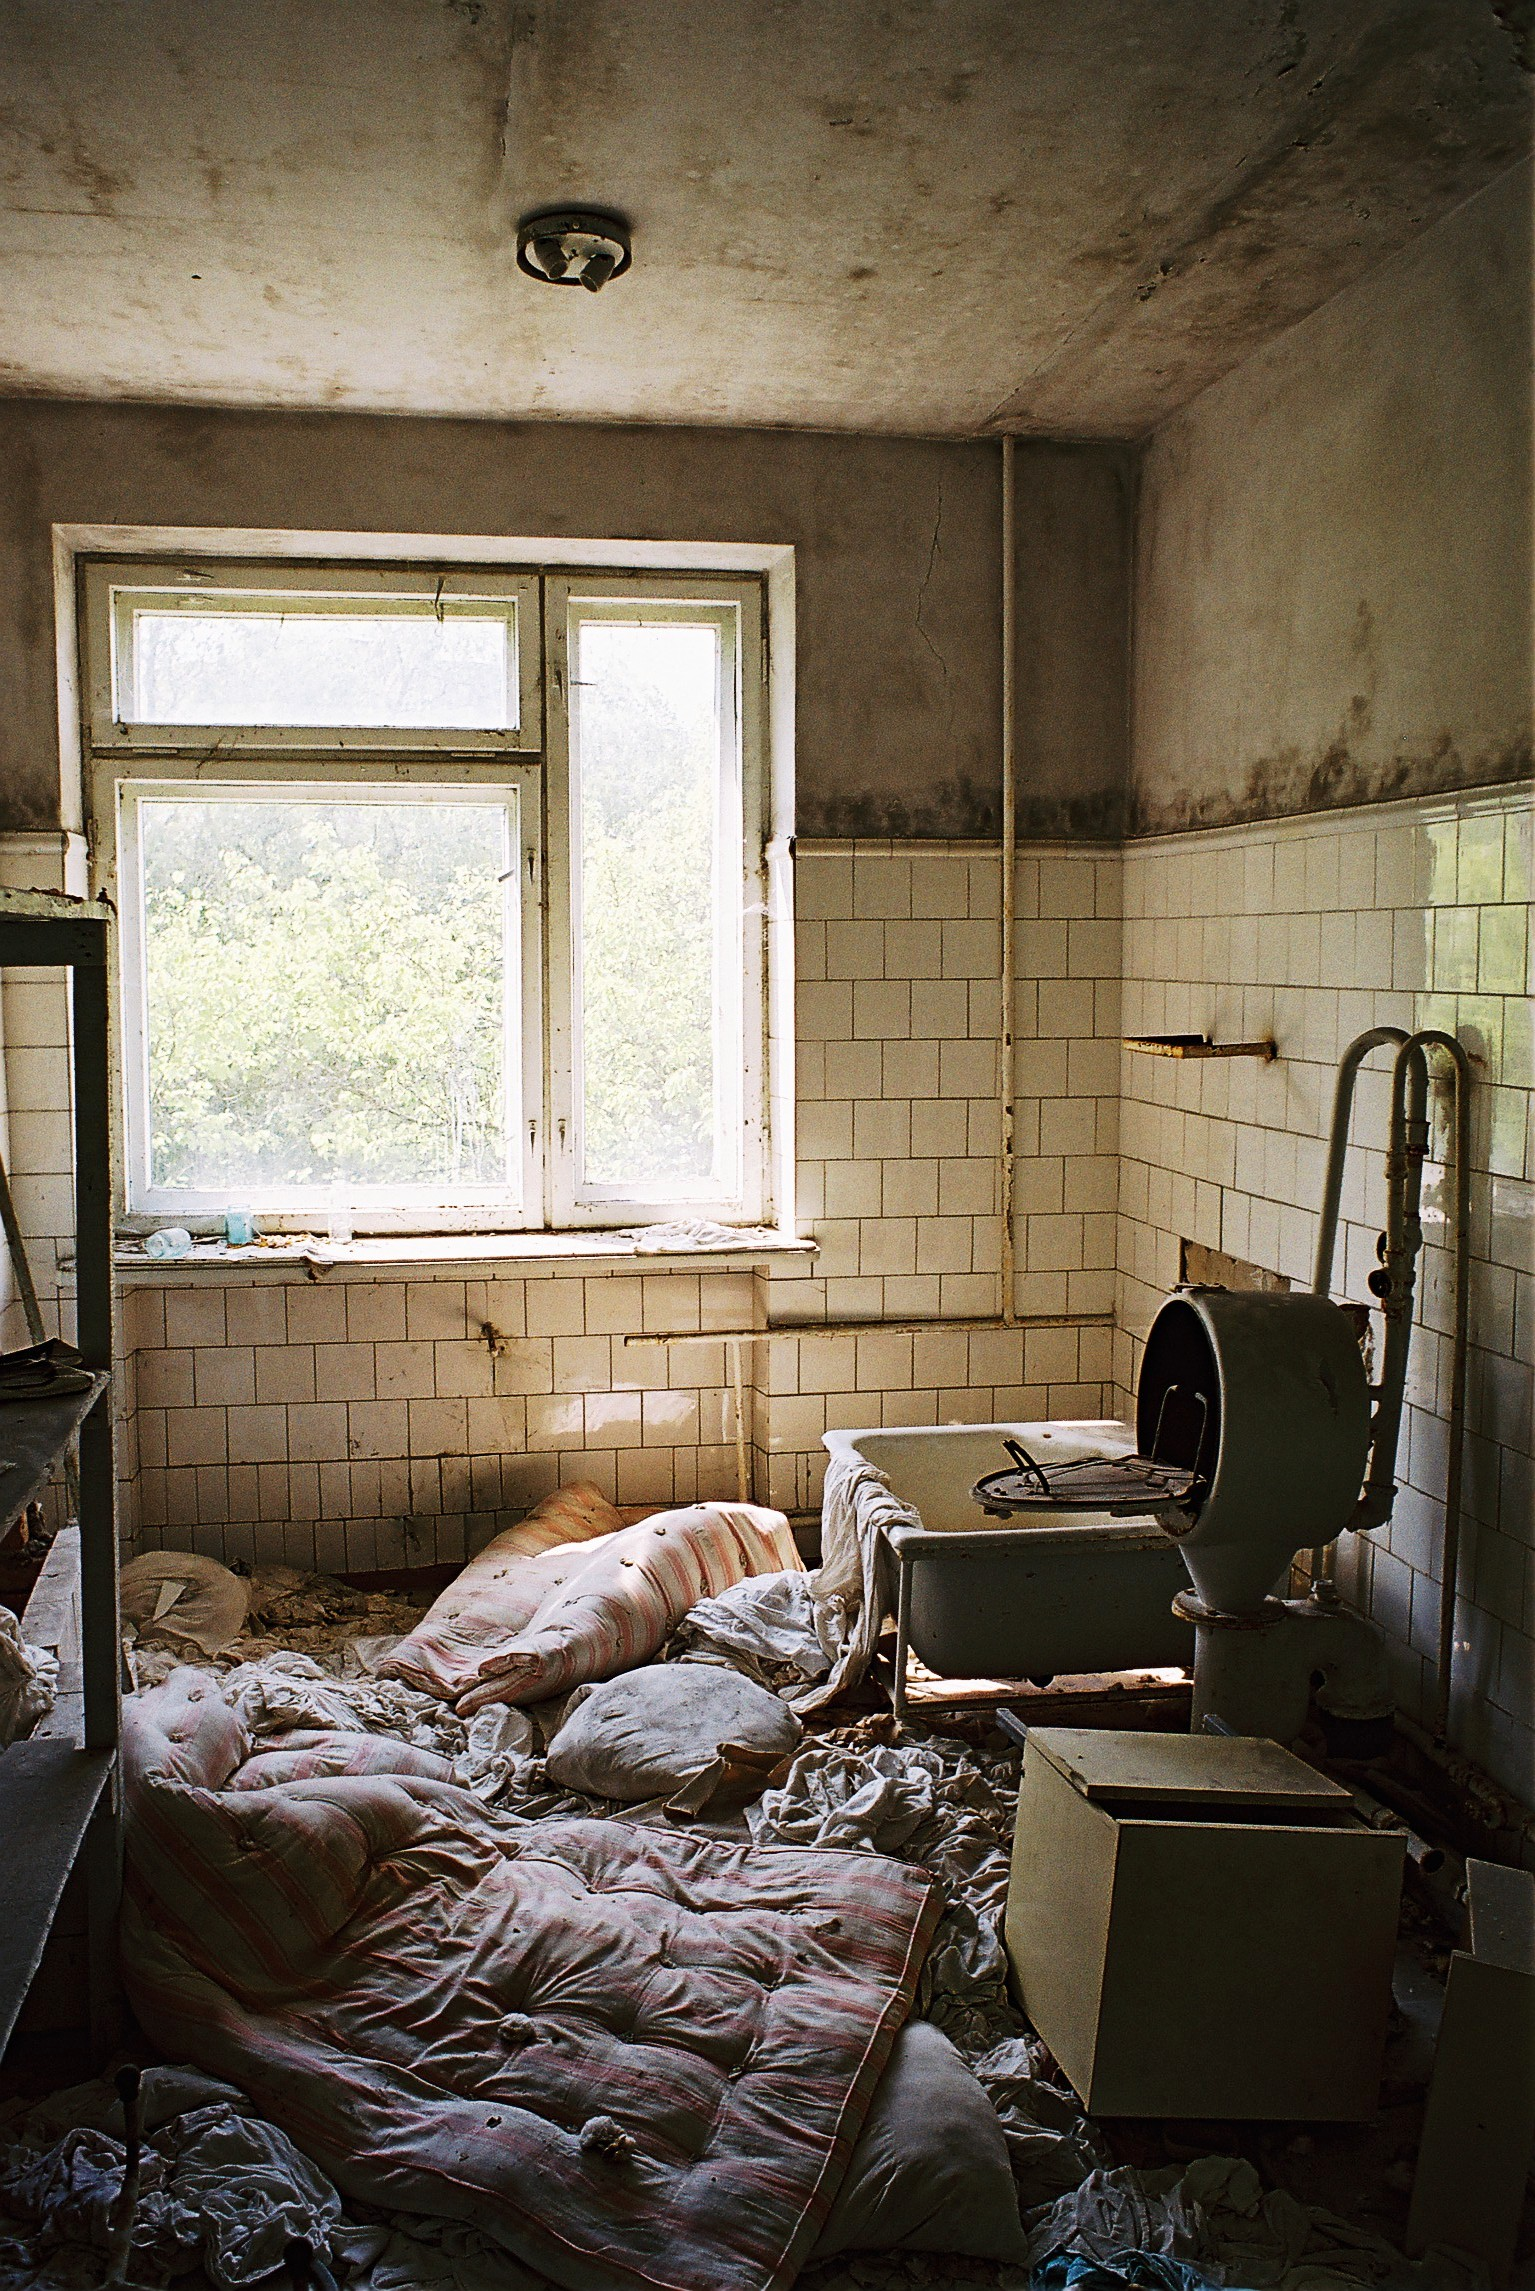 bedding materials in the hospital pripyat author rance ian